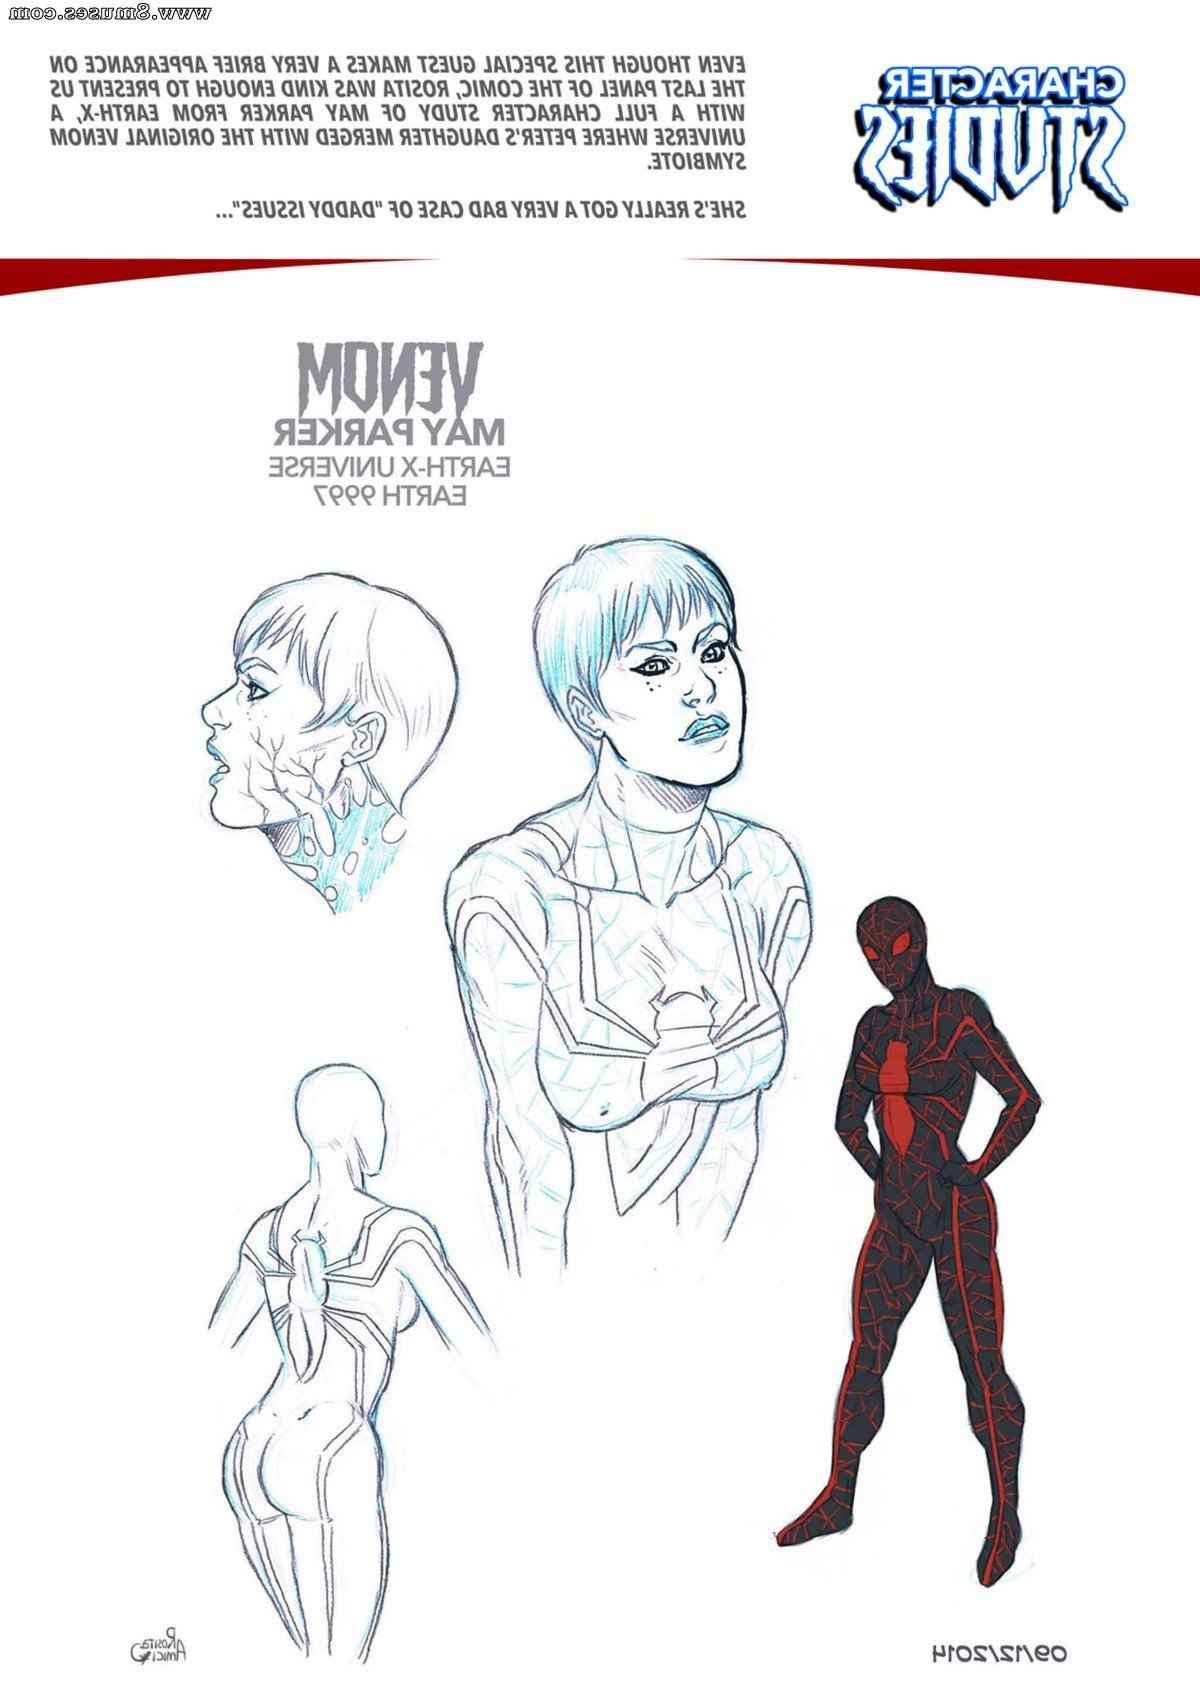 Tracy-Scops-Comics/Mayday-Spidey-2099 Mayday_Spidey_2099__8muses_-_Sex_and_Porn_Comics_19.jpg